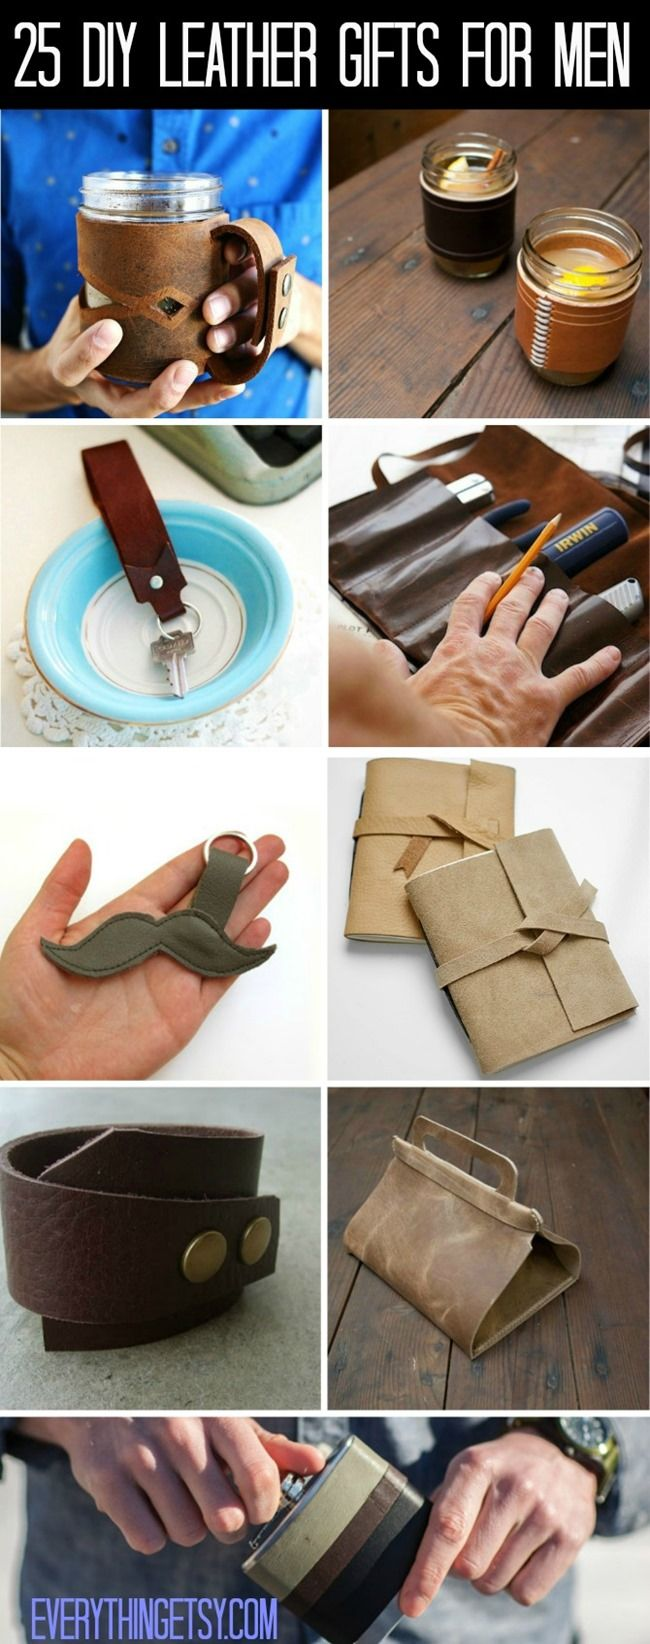 25 DIY Leather Gifts for Men Shopping for gifts for men can be super difficult. Go ahead and make them something extra special this time with this collection of DIY leather gifts! They will love it, a